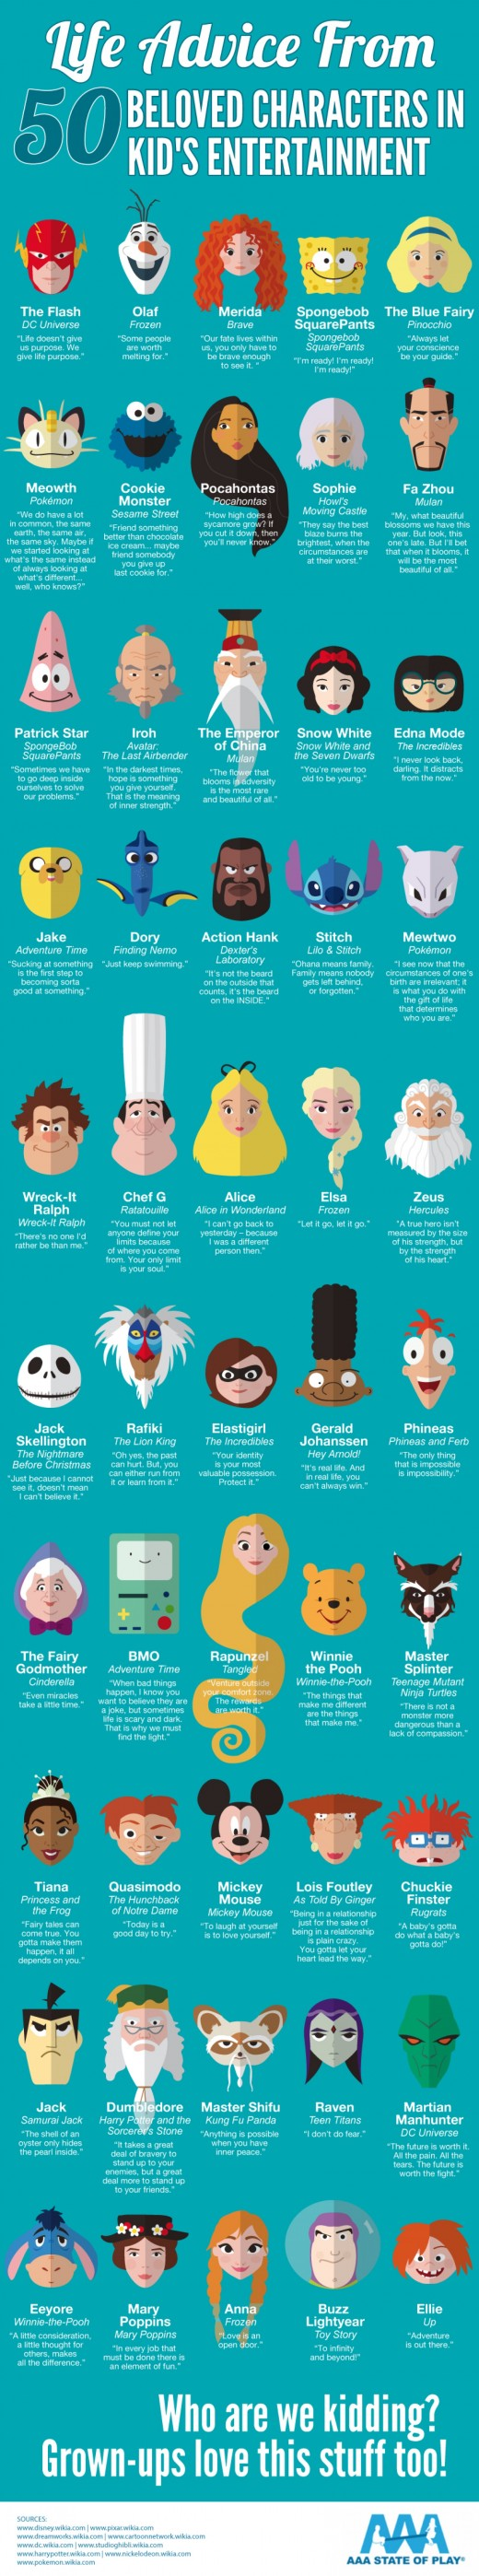 Cartoon Characters Quotes And Sayings : Quotes from famous cartoon characters quotesgram